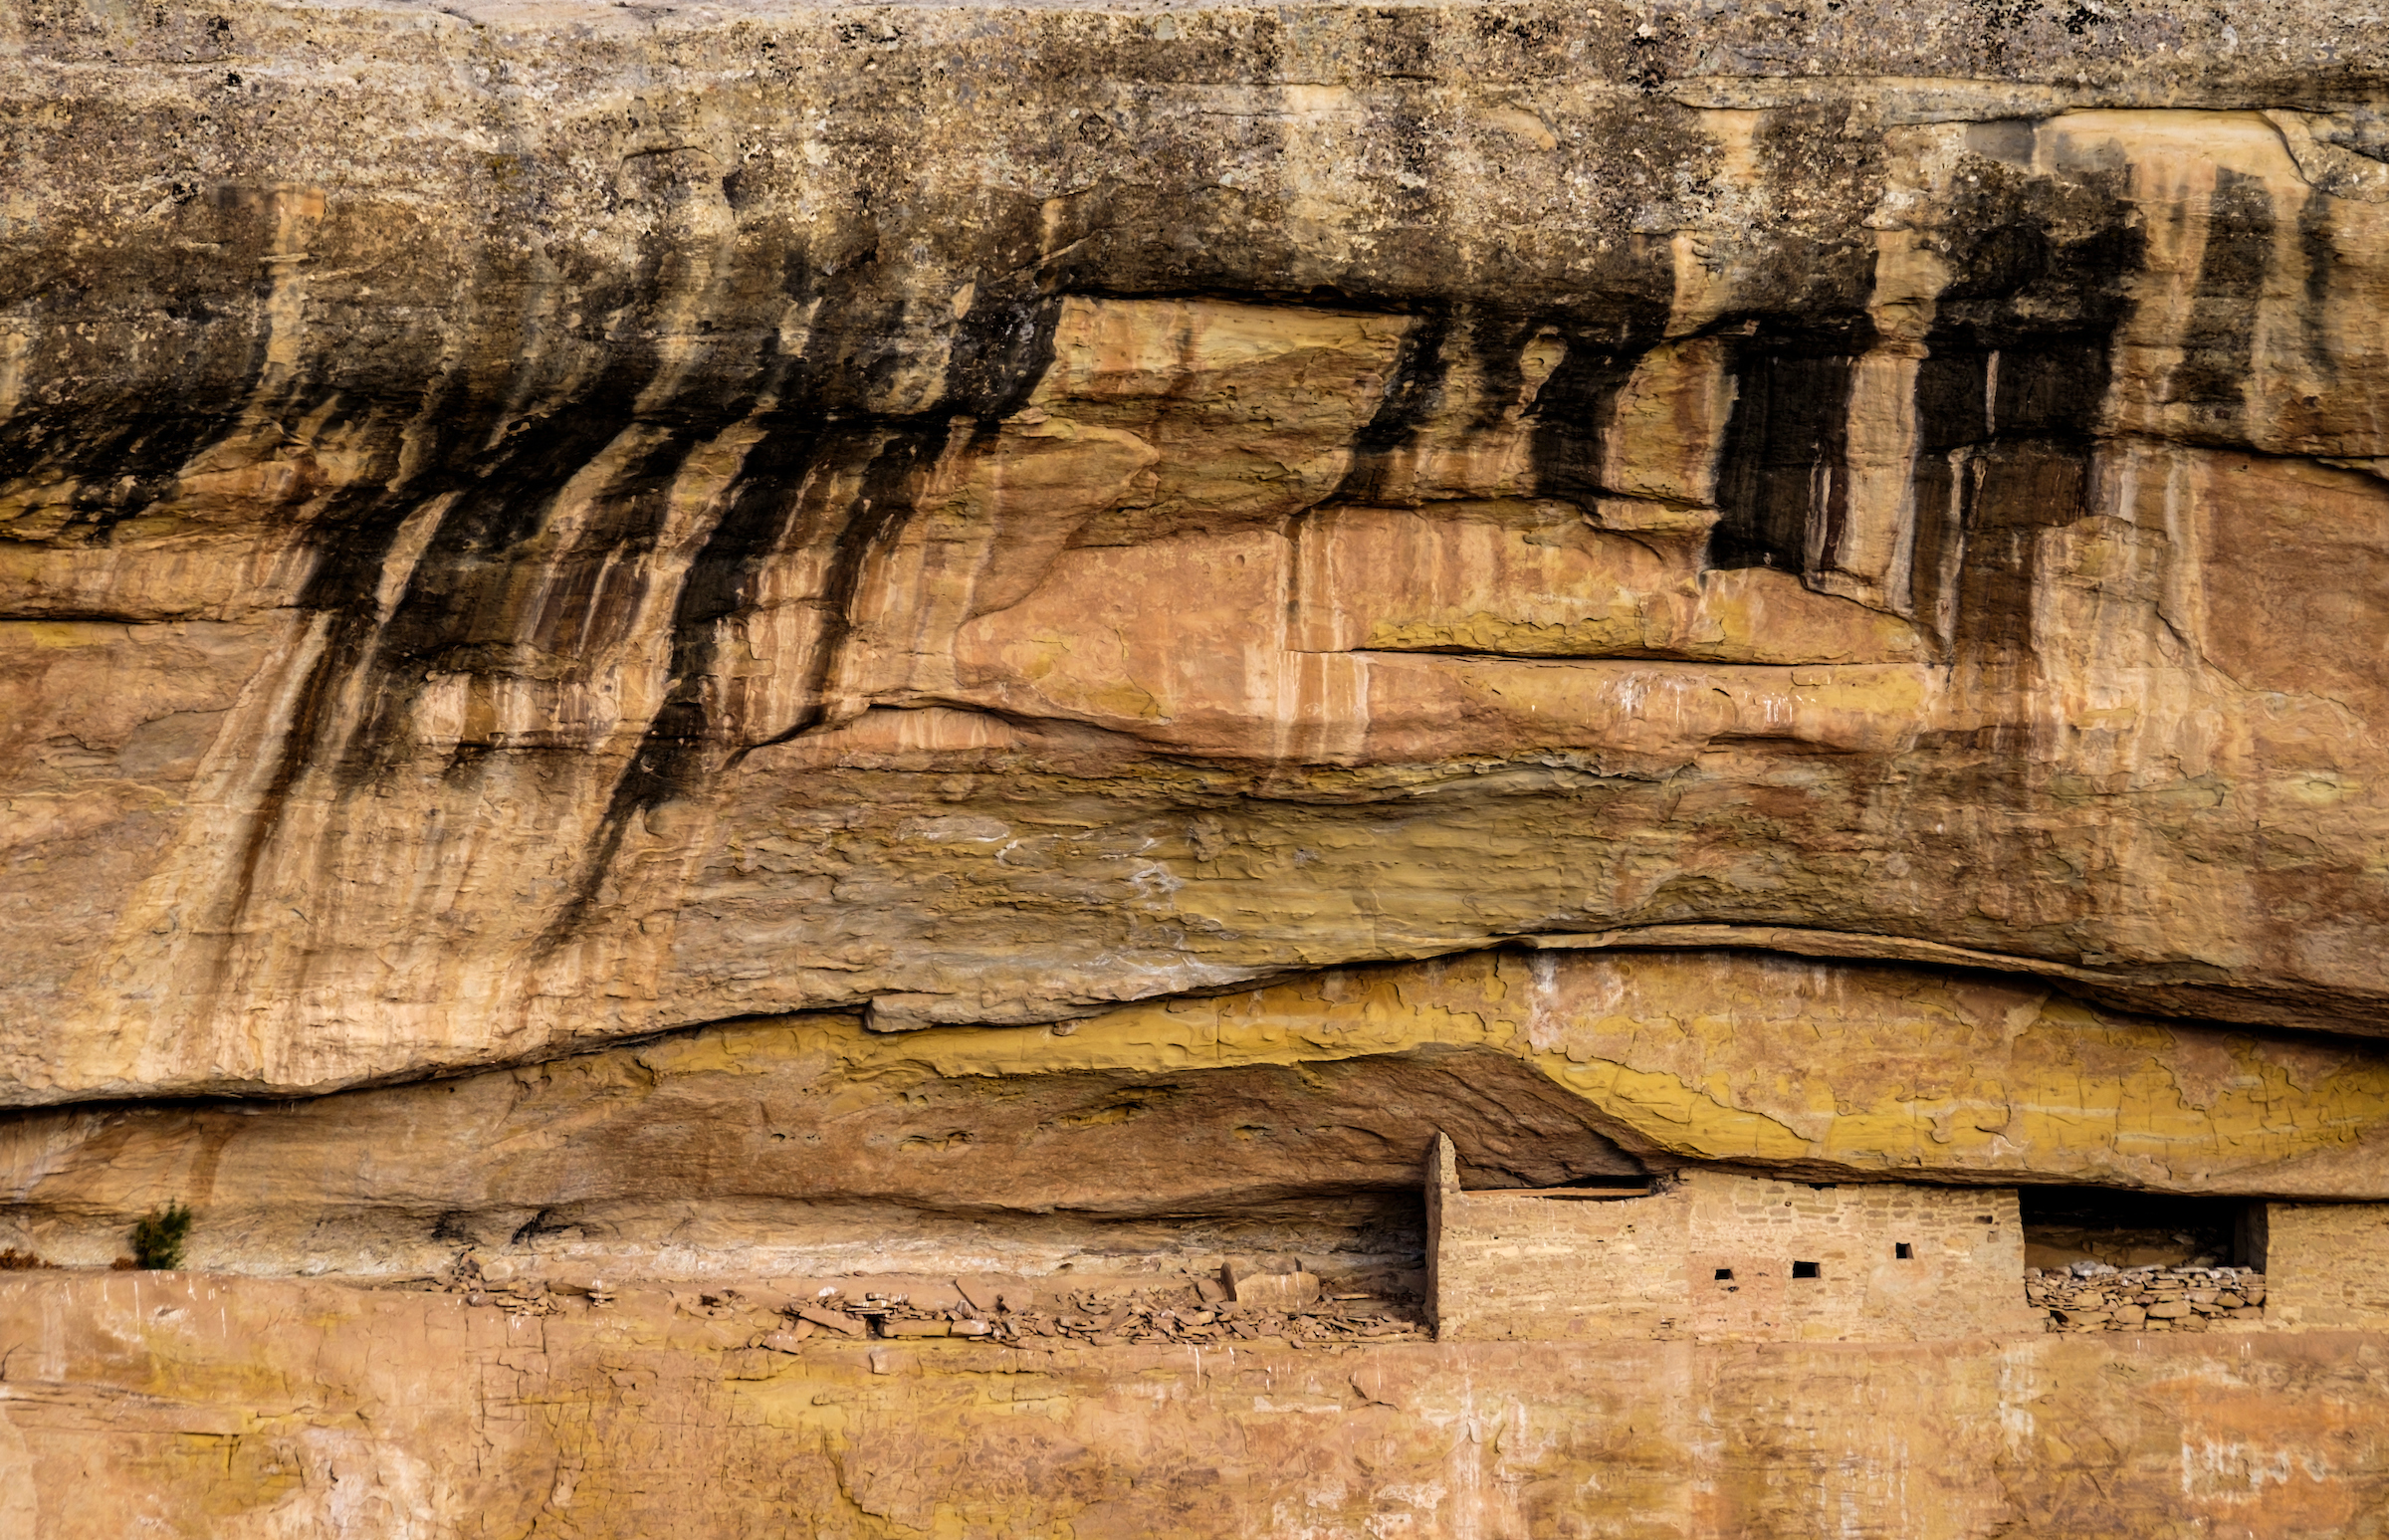 Desert varnish (dark streaks on rock created by oxidization) as seen above a dwelling from a park road overlook.